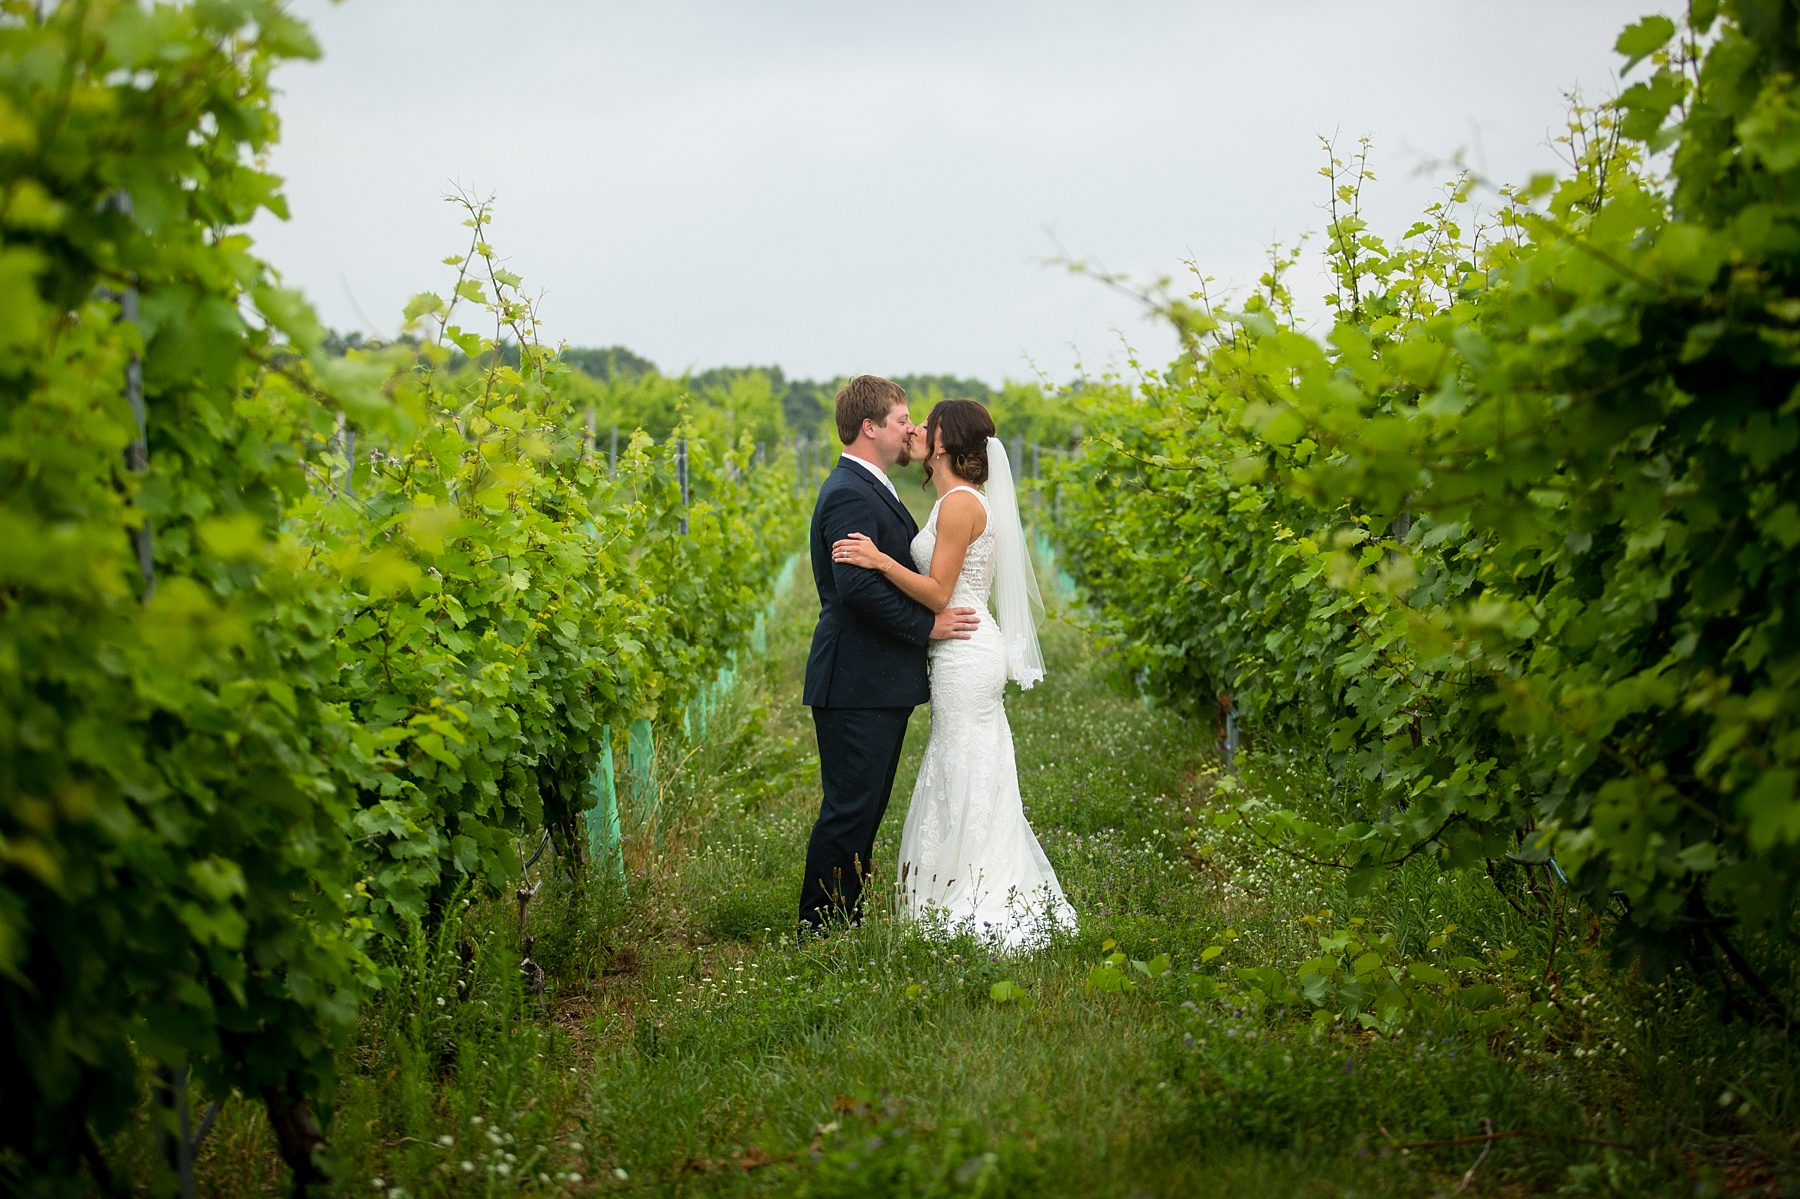 Brandon_Shafer_Photography_Elizabeth_Scott_Traverse_City_Wedding_0013.jpg